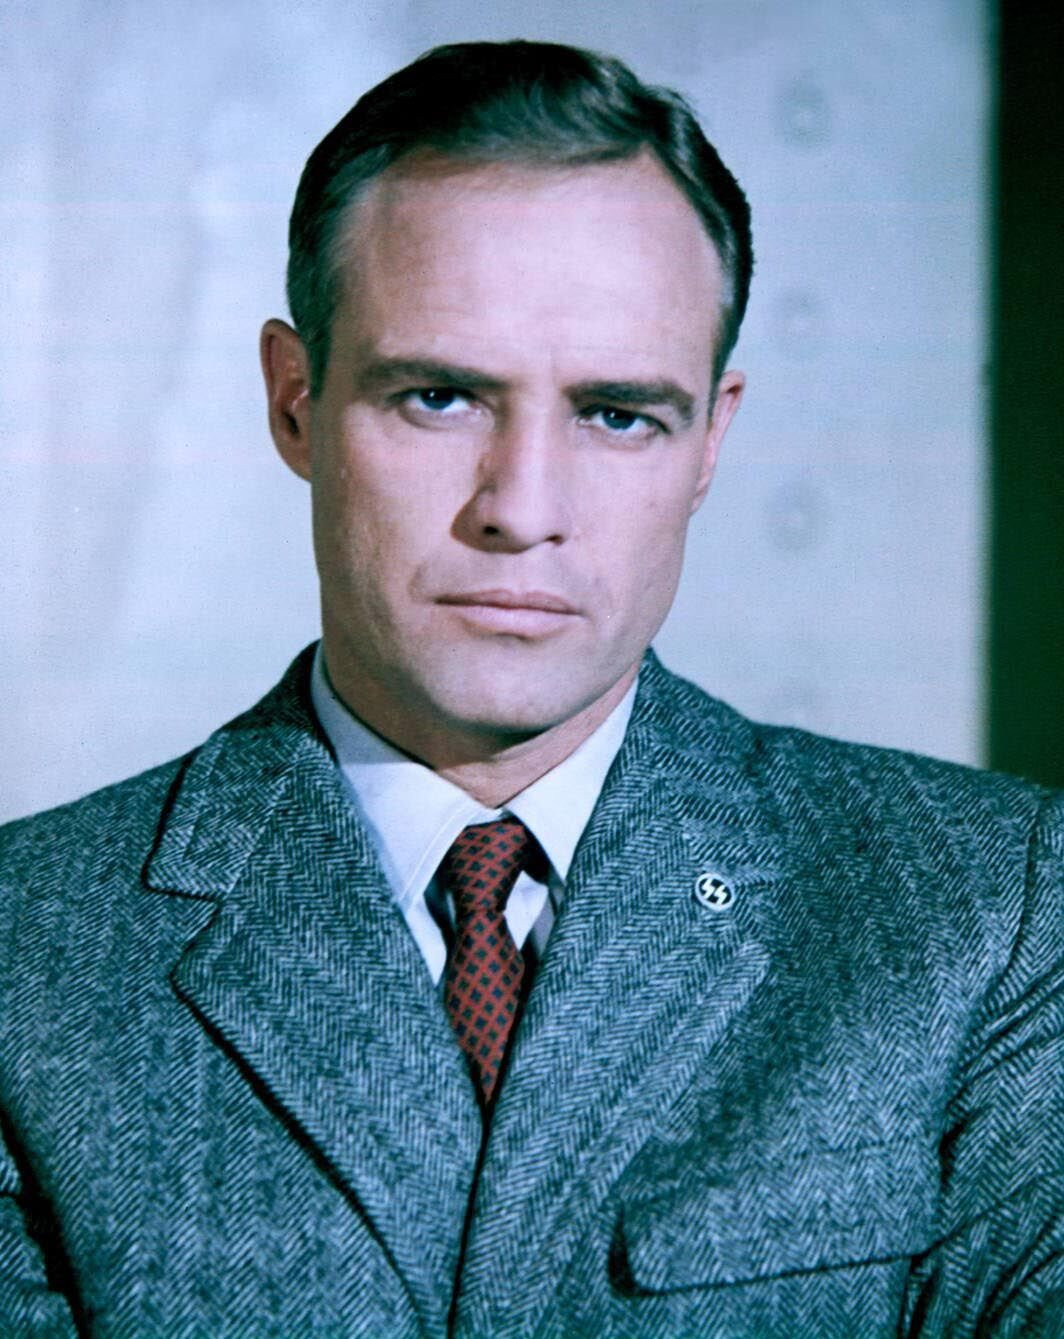 Marlon Brando / Source : Getty Images